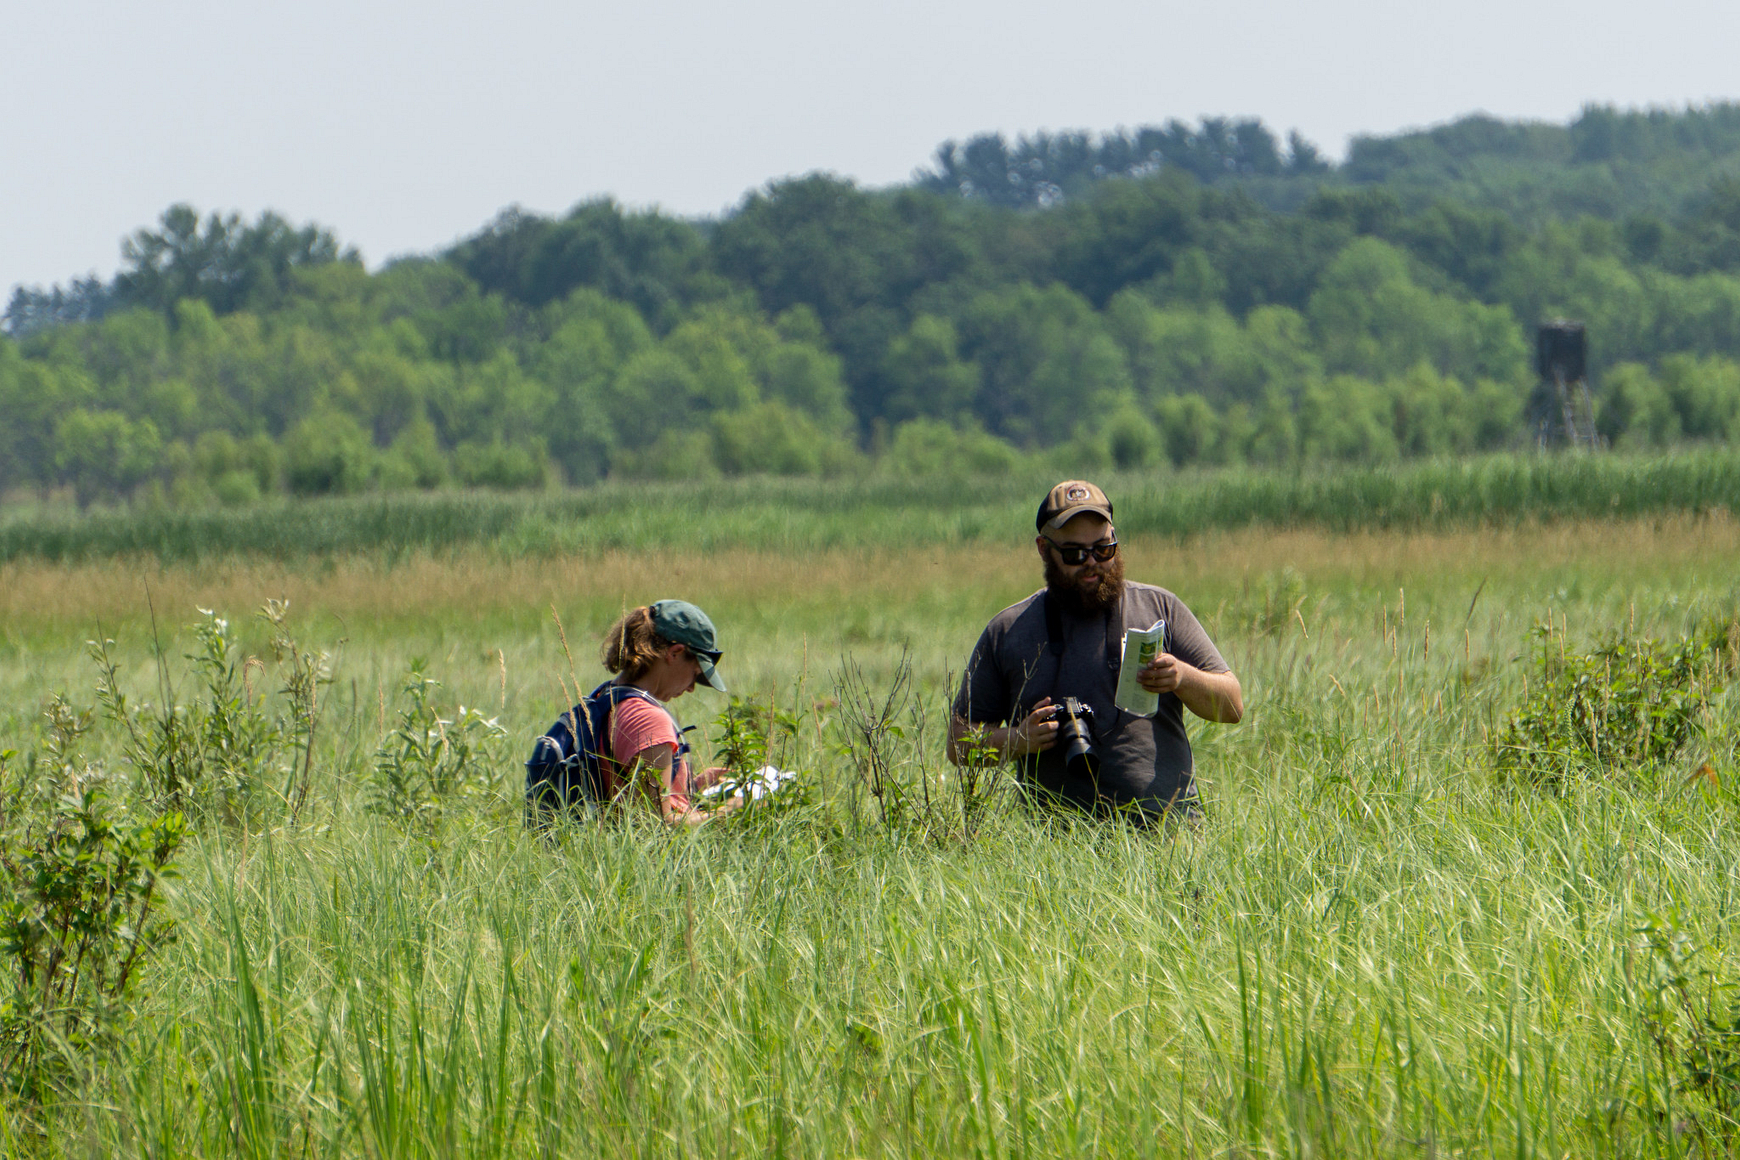 Man and woman in field of tall prairie grass surveying for butterflies